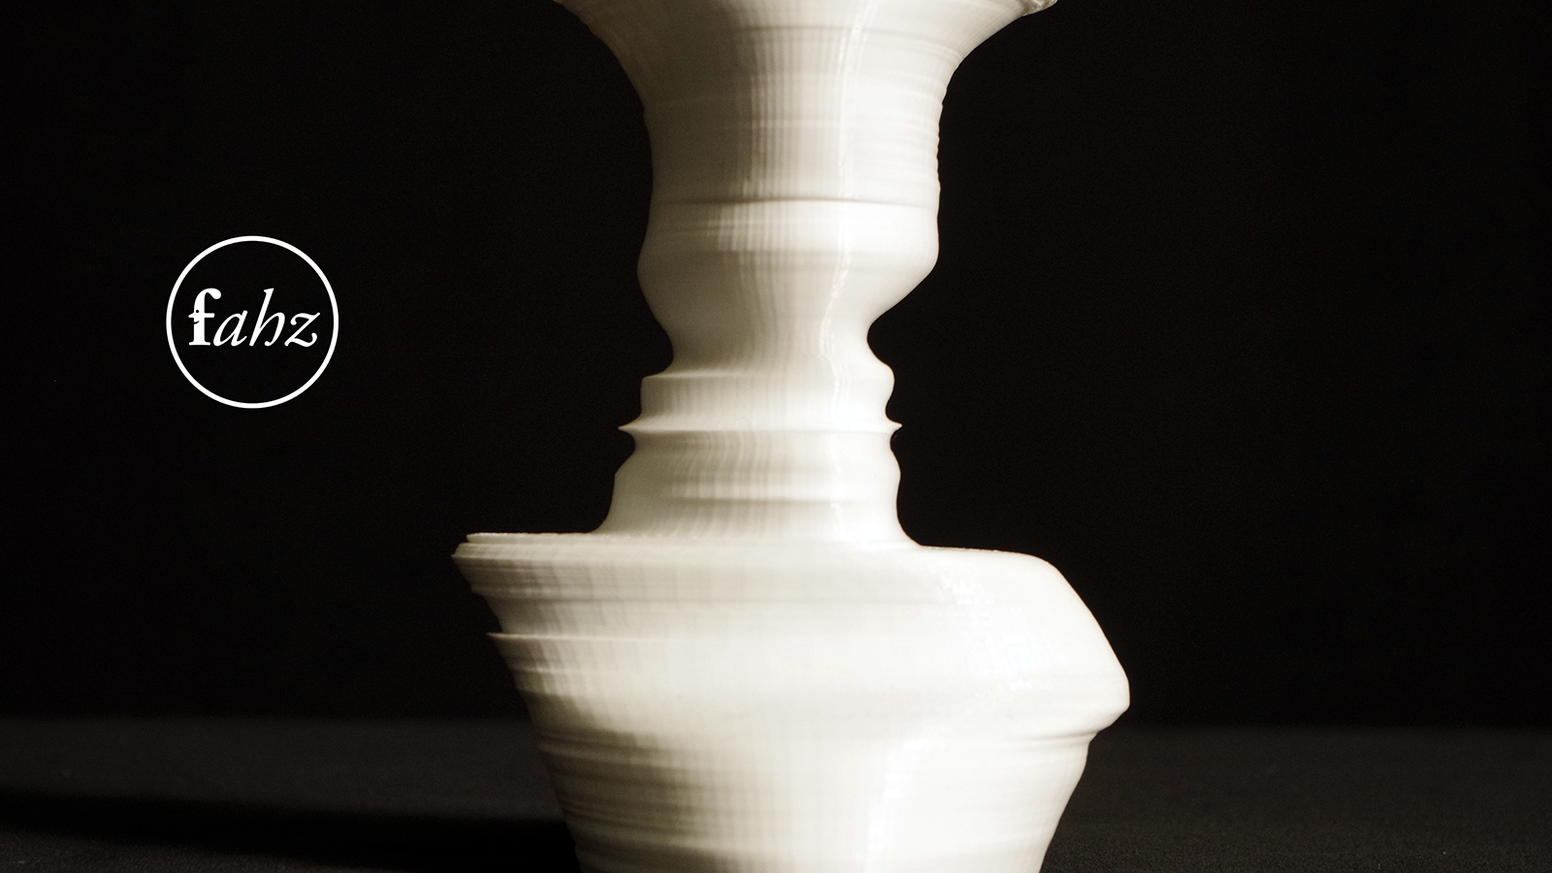 Fahz its your face in a vase by nicholas and martha desbiens we transform your photos into a beautiful custom 3d printed vase reviewsmspy